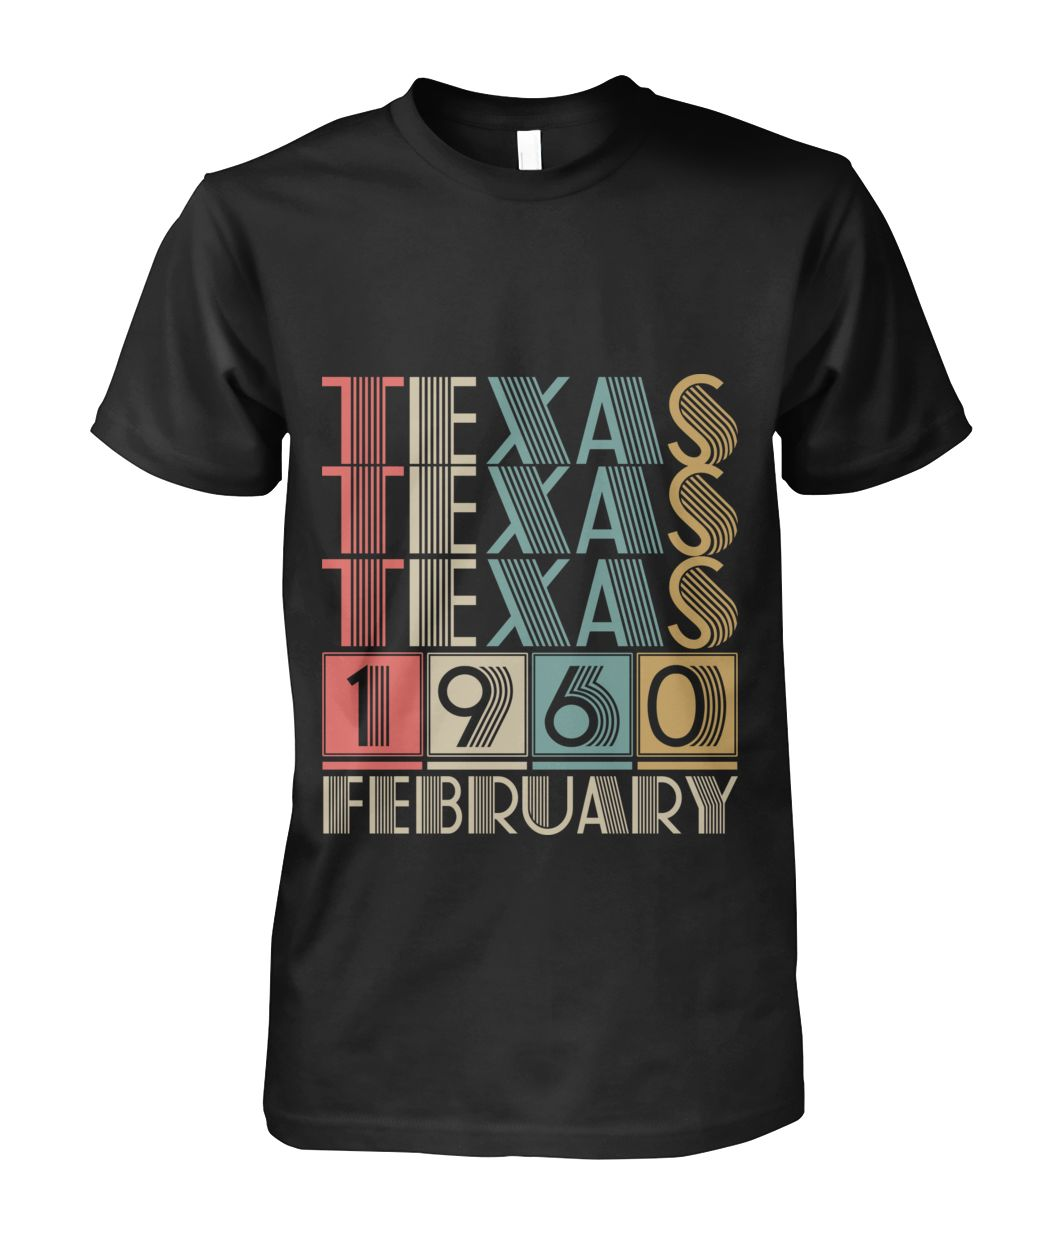 Born in Texas in February 1960 t shirt